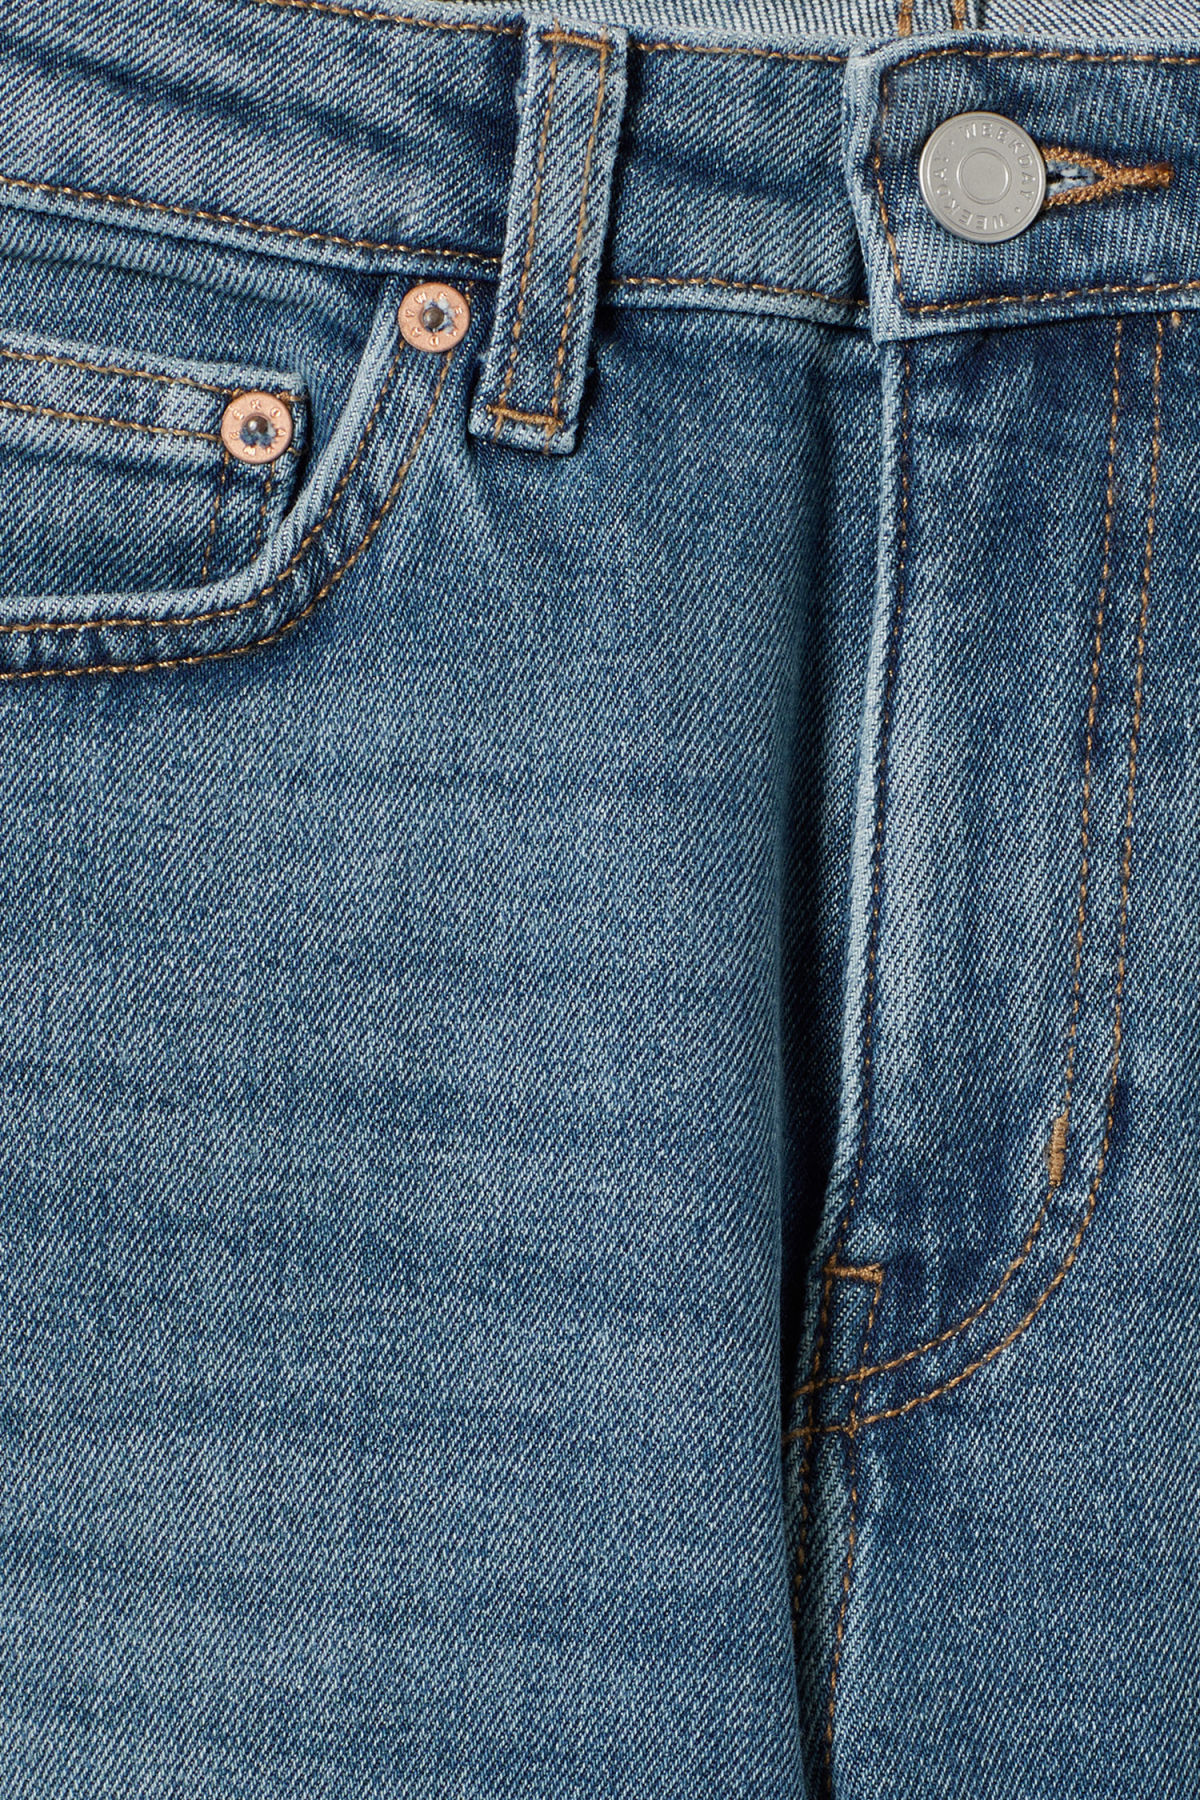 Detailed image of Weekday thursday arizona jeans in blue